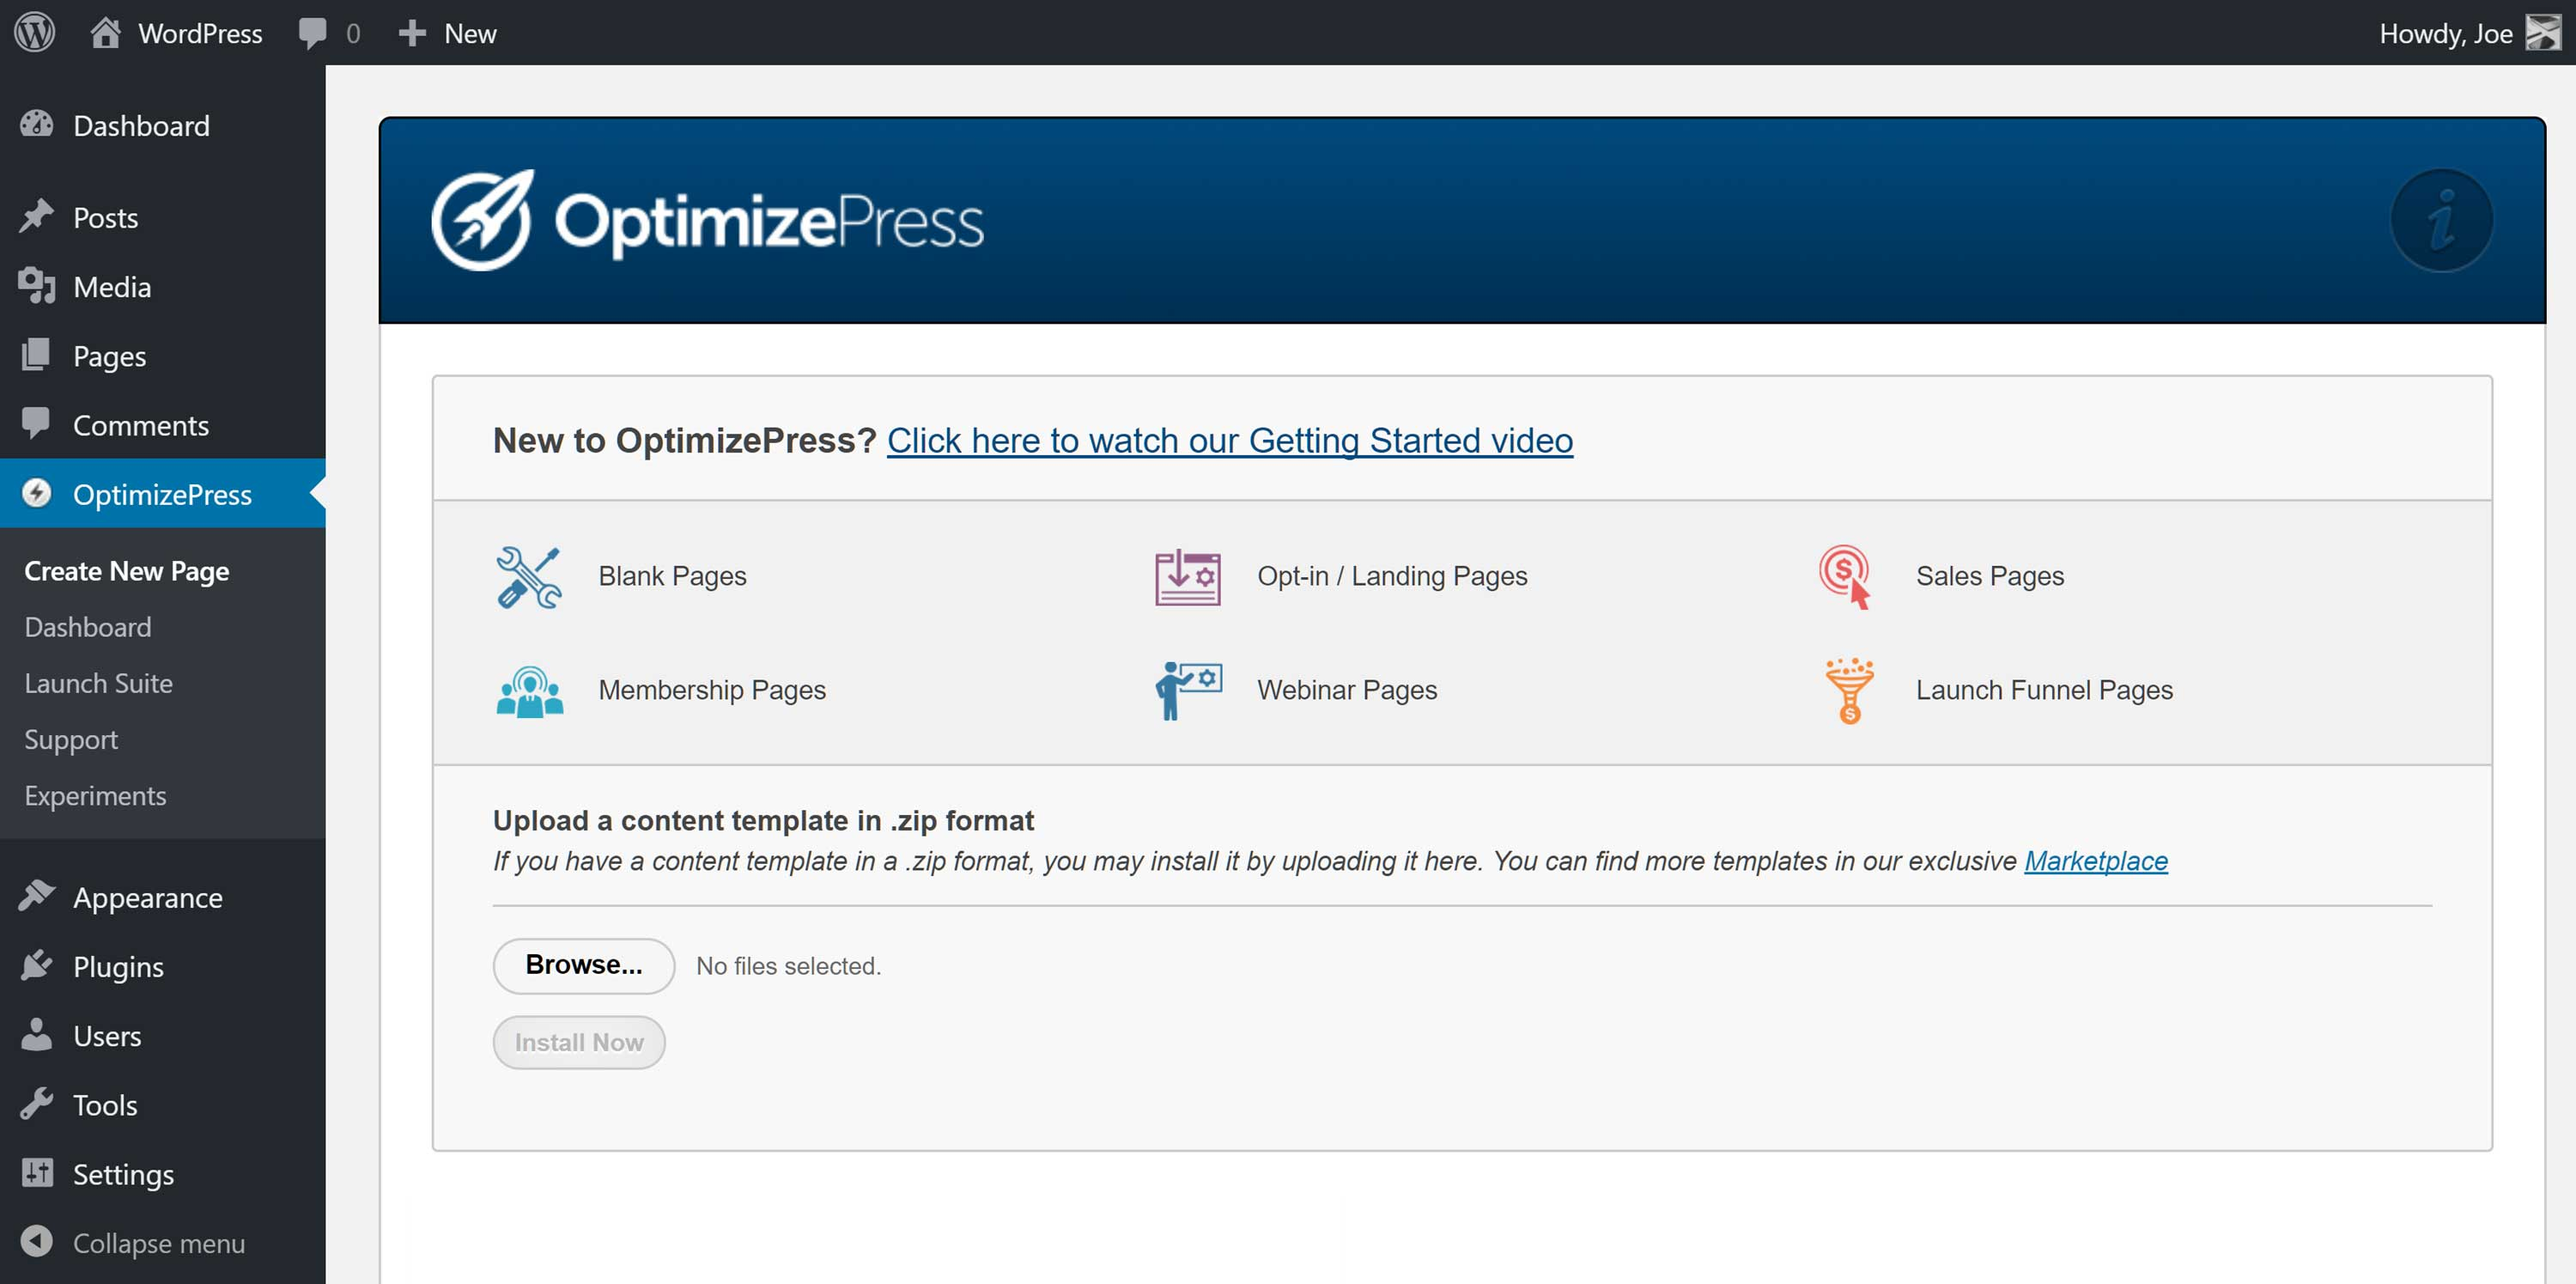 The OptimizePress Plugin Dashboard